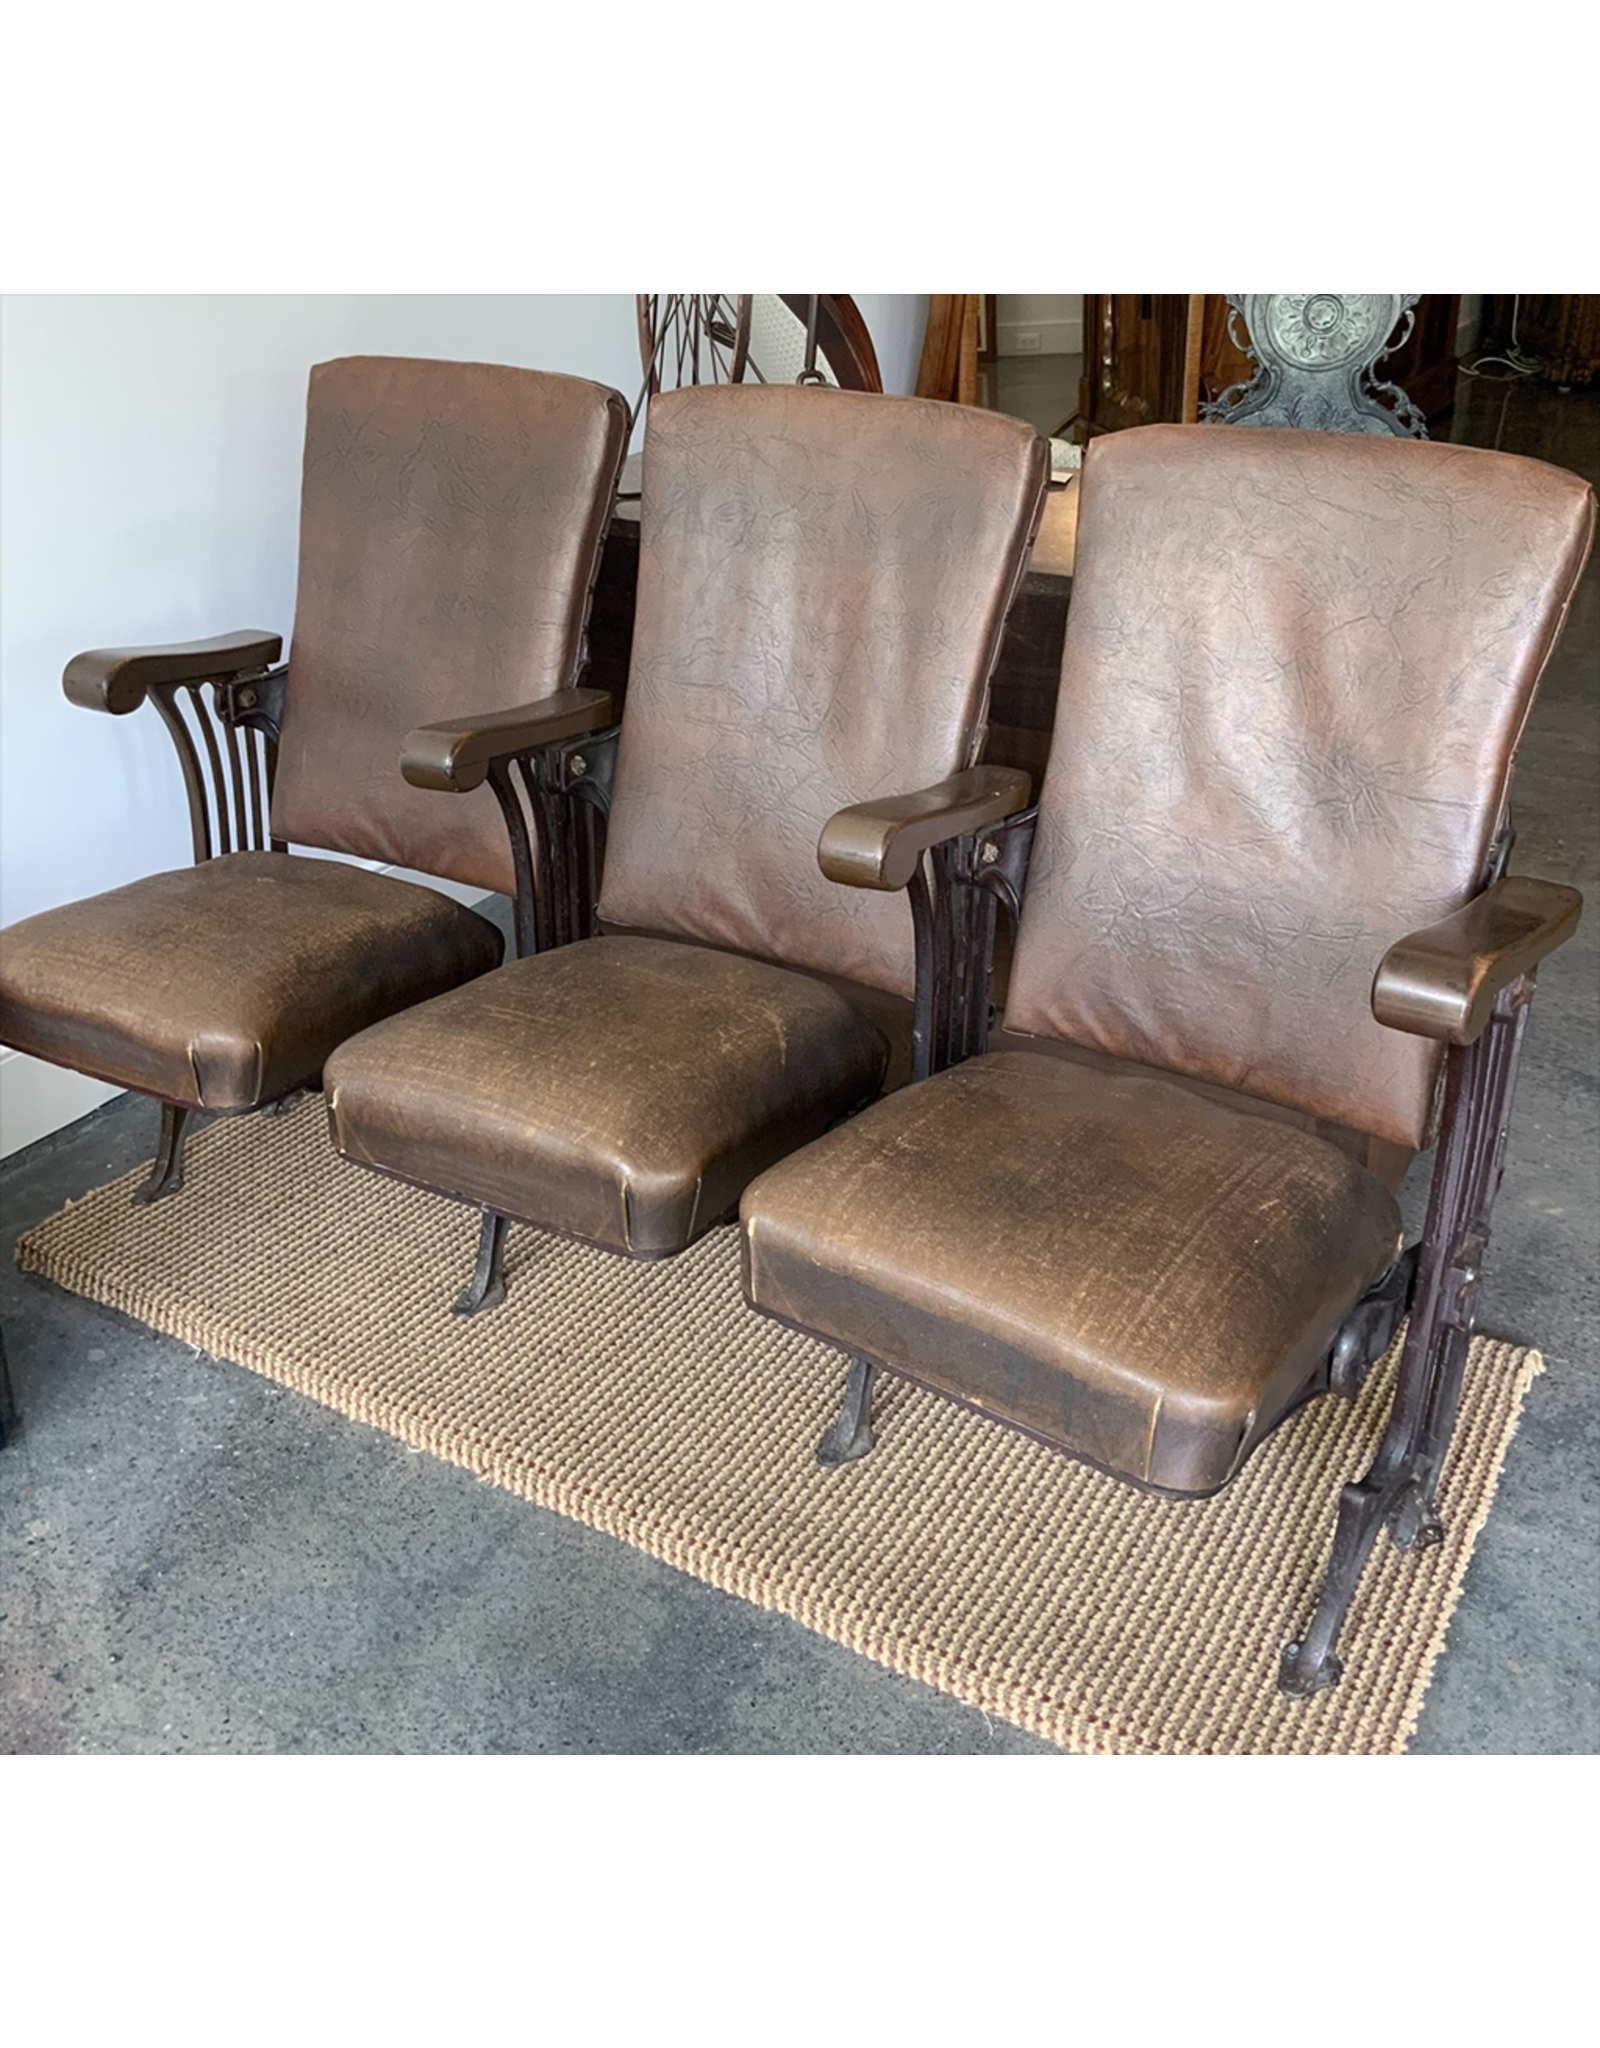 SPV Vintage theater seats